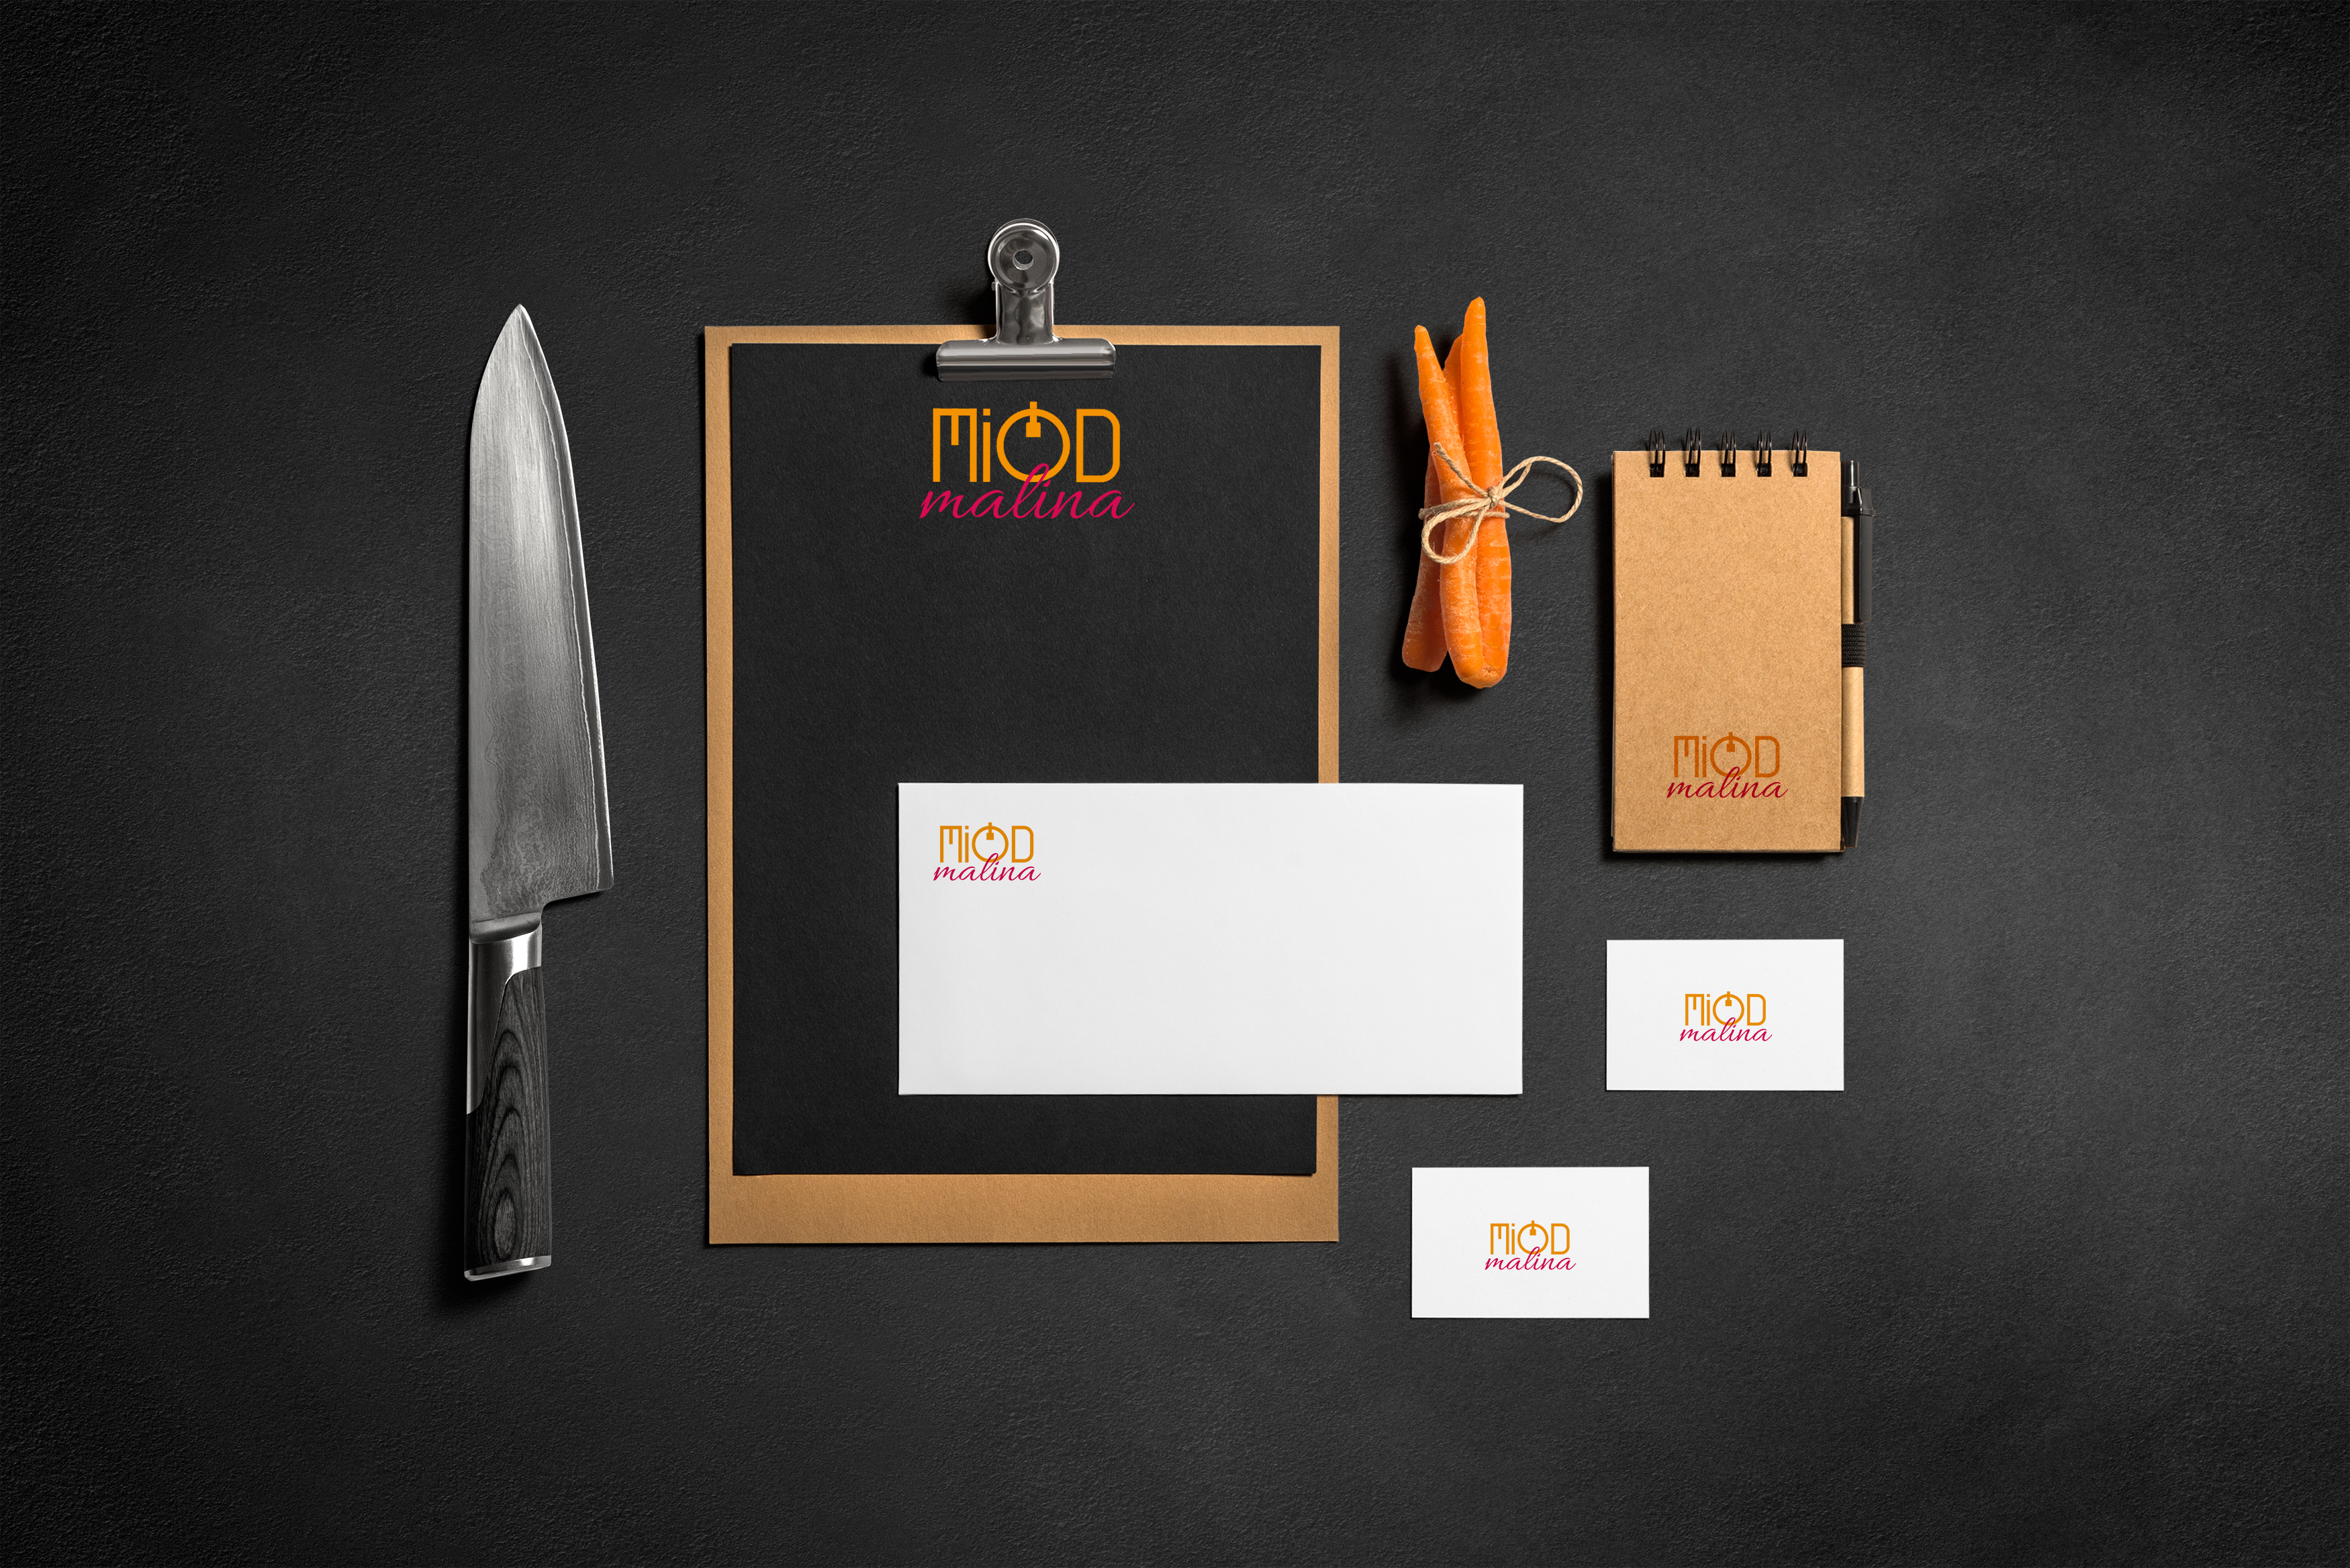 Food-stationery-free-mockup-by-mockupcloud